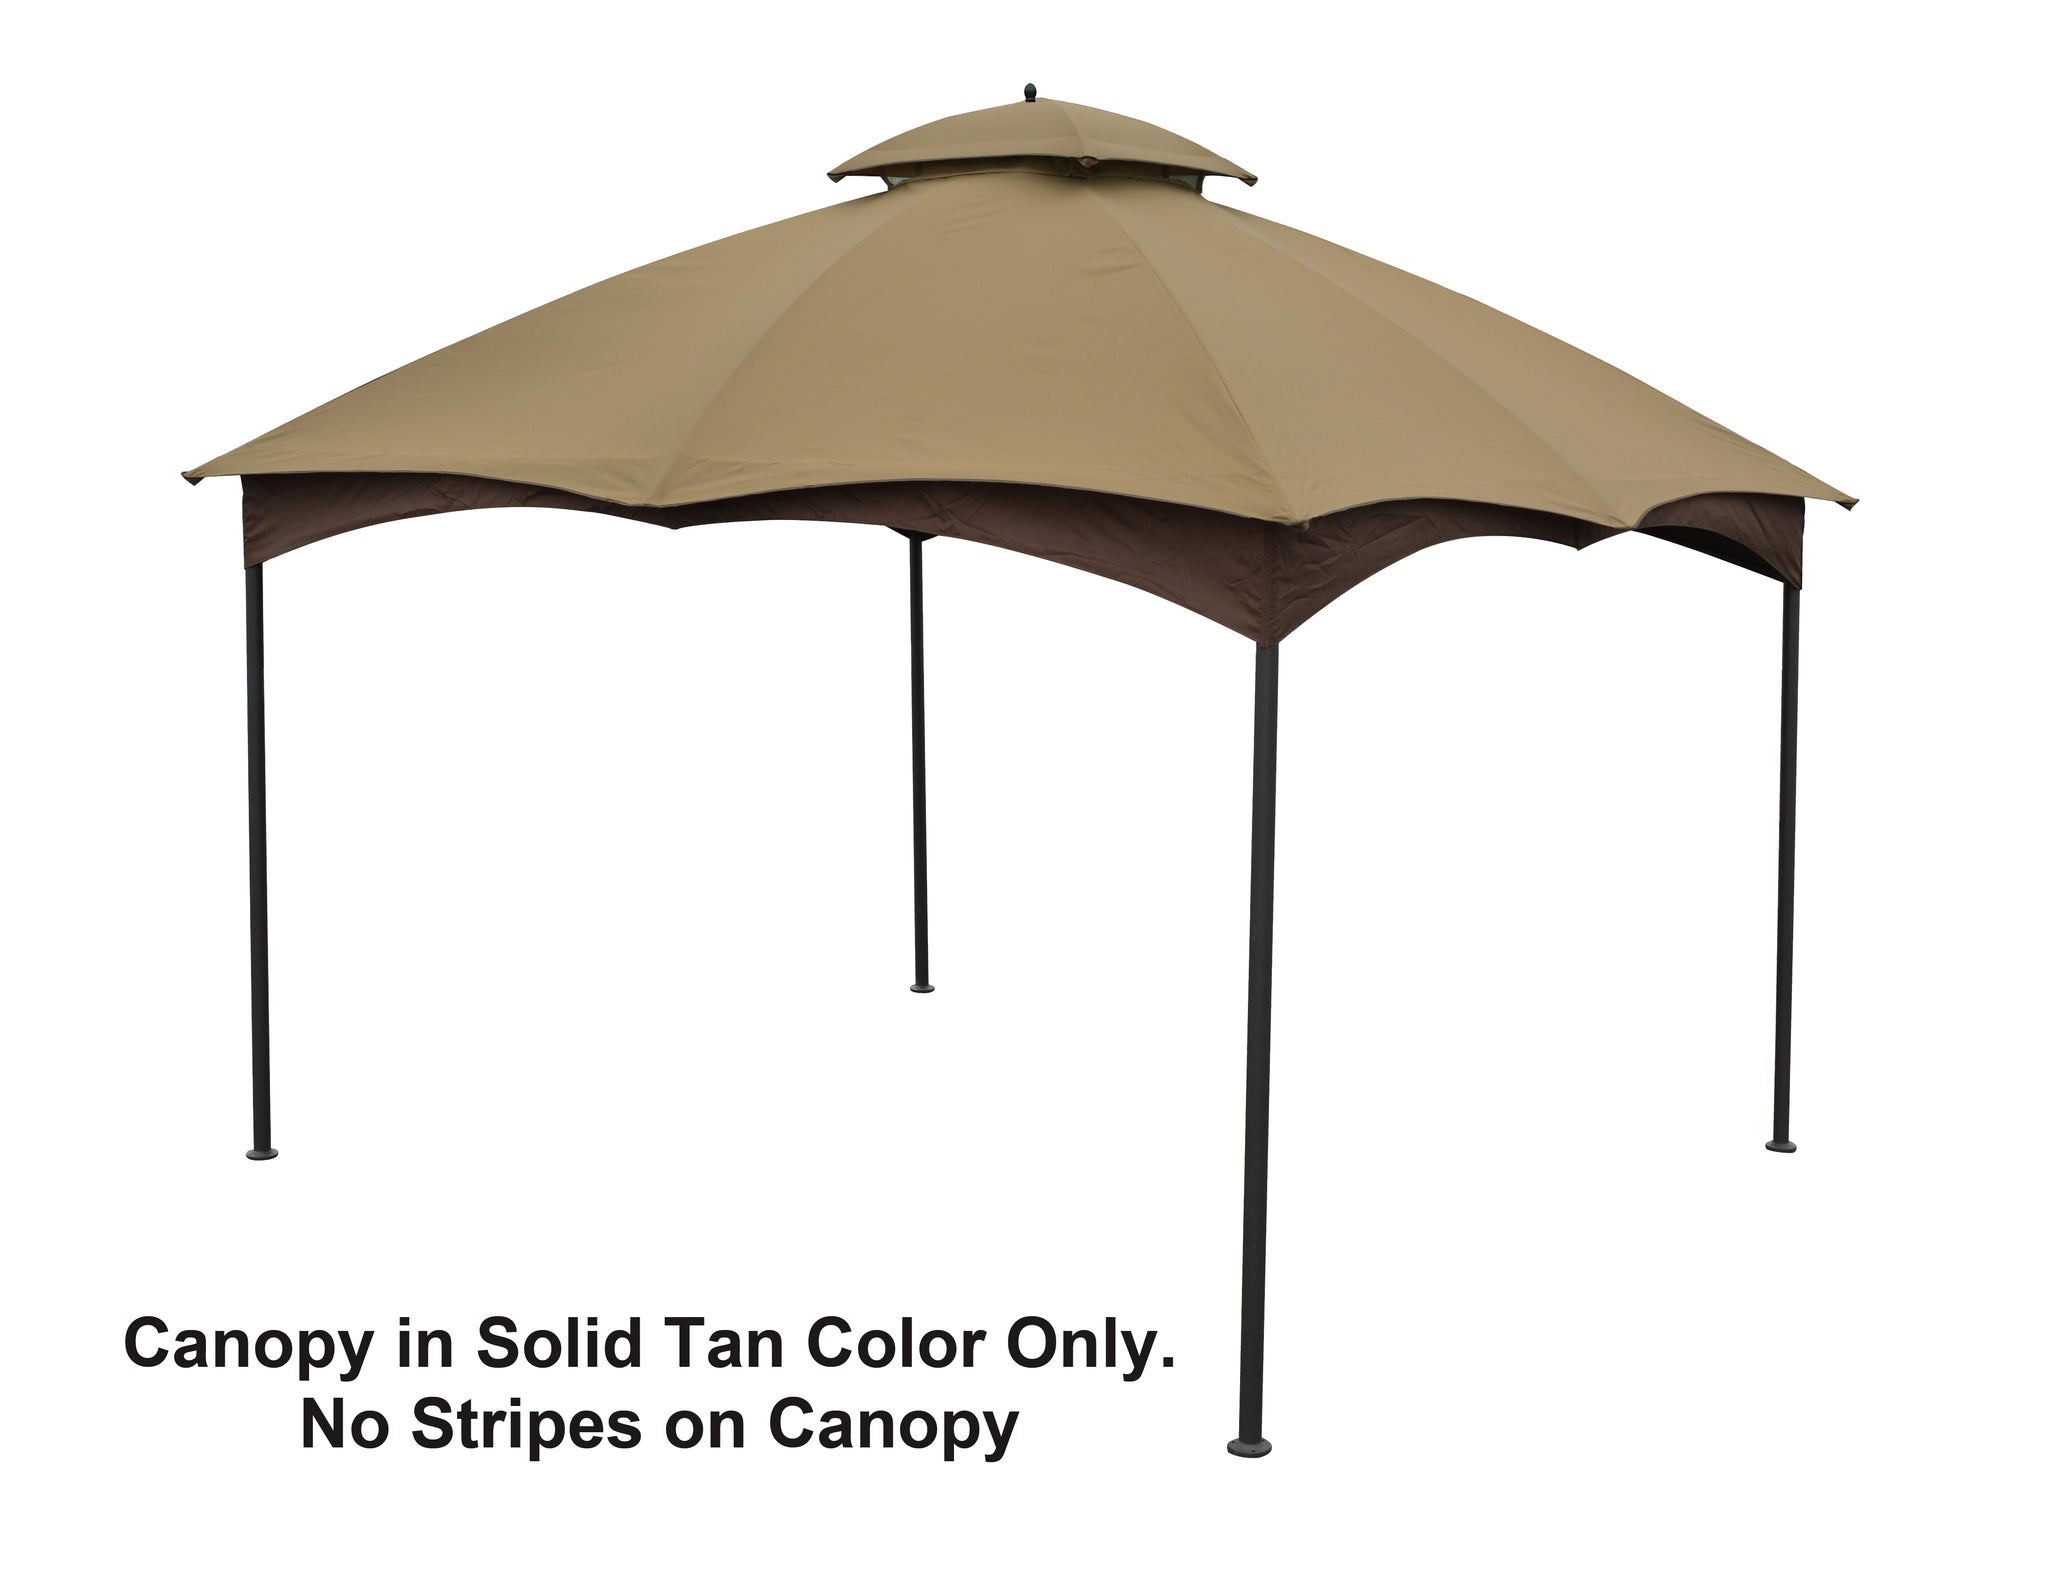 APEX GARDEN Replacement Canopy Top Massillon 10' x 12' Gazebo Model #L-GZ933PST (Tan) - APEX GARDEN